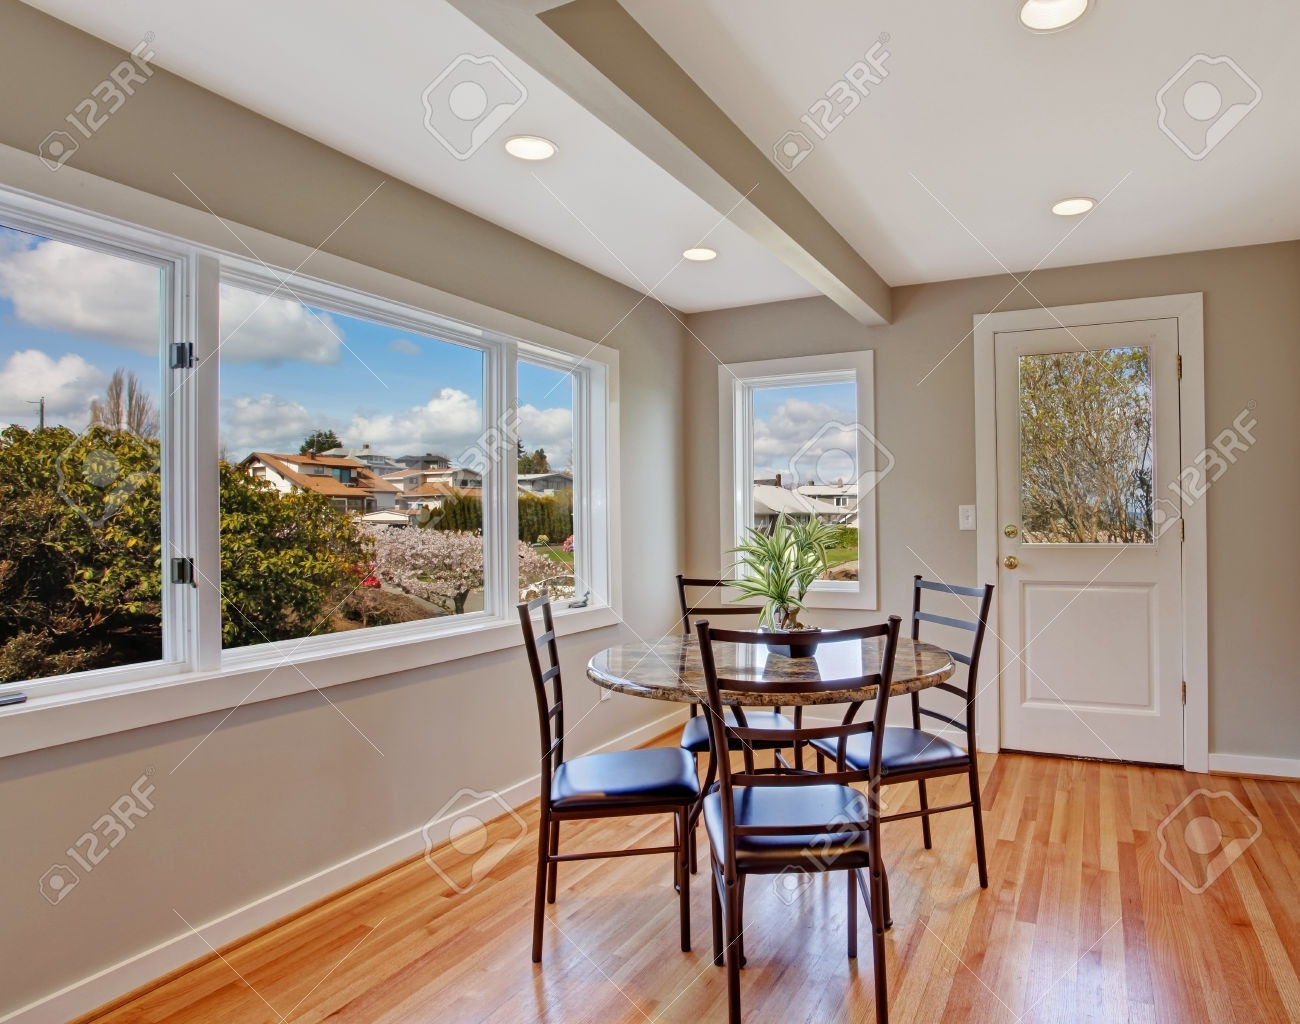 25 Recommended Dark Hardwood Floors With White Trim